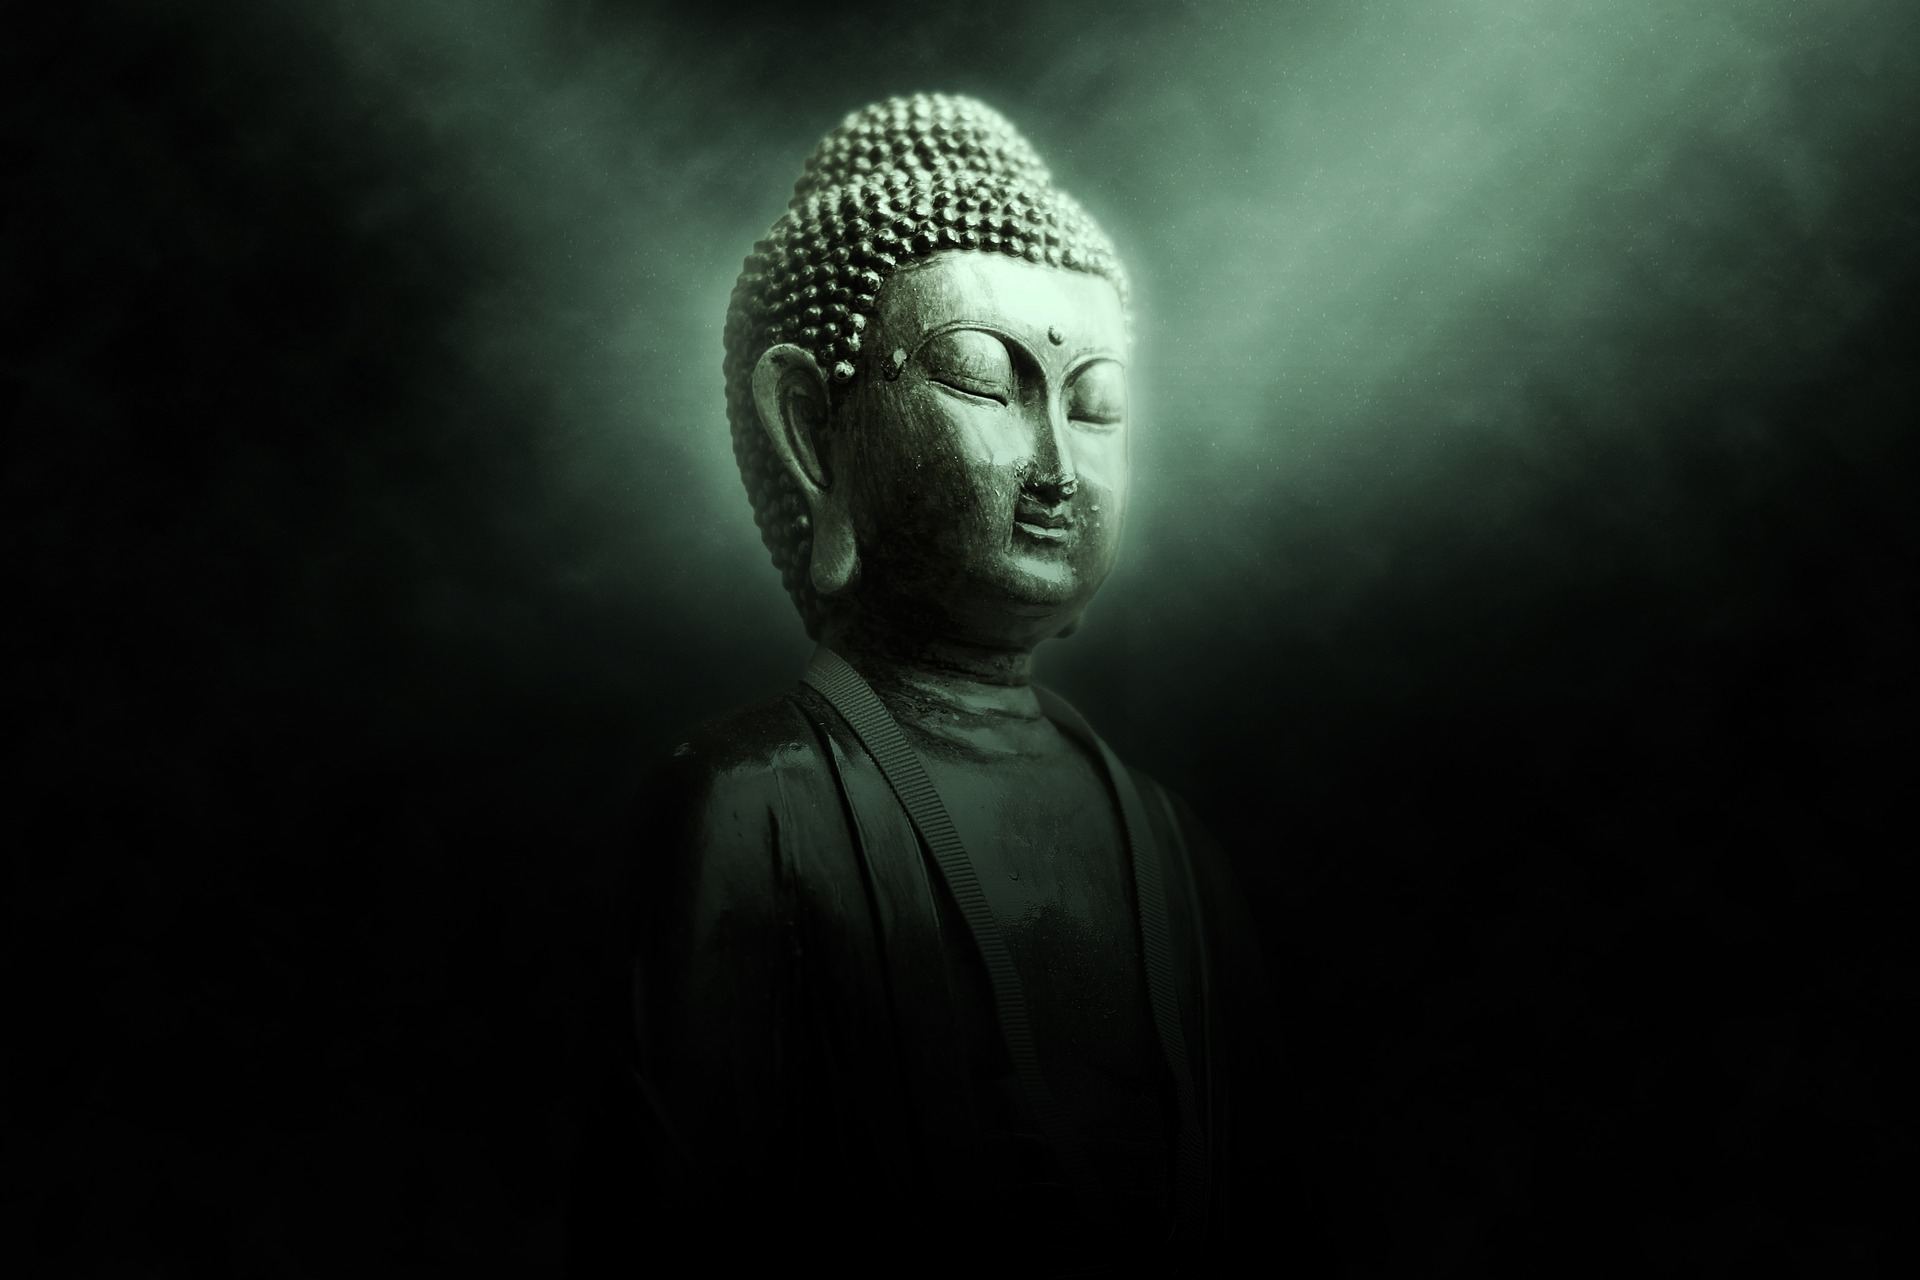 9 - Shakyamuni Buddha's Enlightenment: What Did He Realize